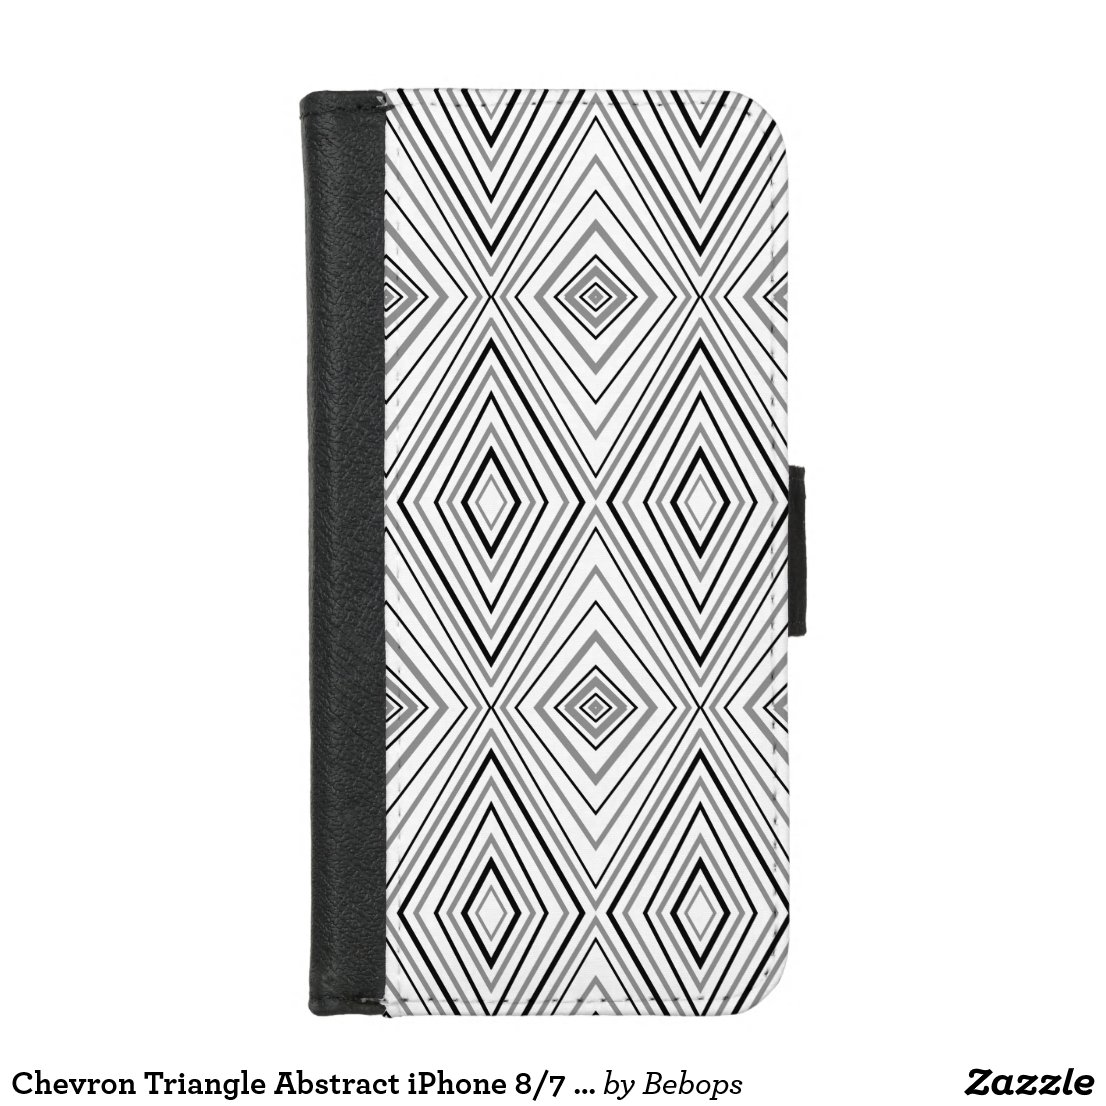 Chevron Triangle Abstract iPhone 8/7 Wallet Case